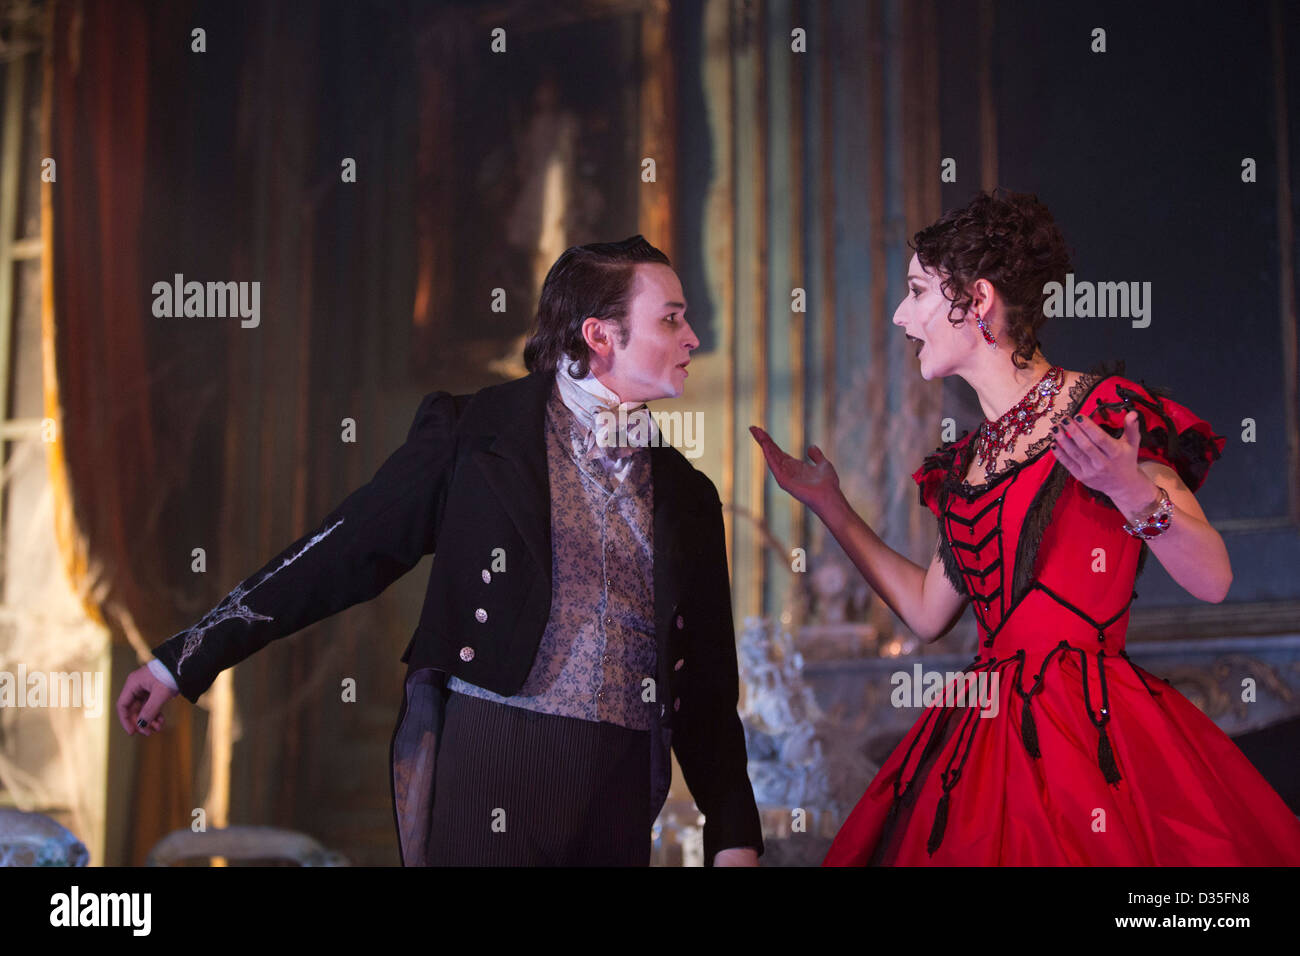 The play Great Expectations adapted from a Charles Dickens novel opens at the Vaudeville Theatre in London - Stock Image